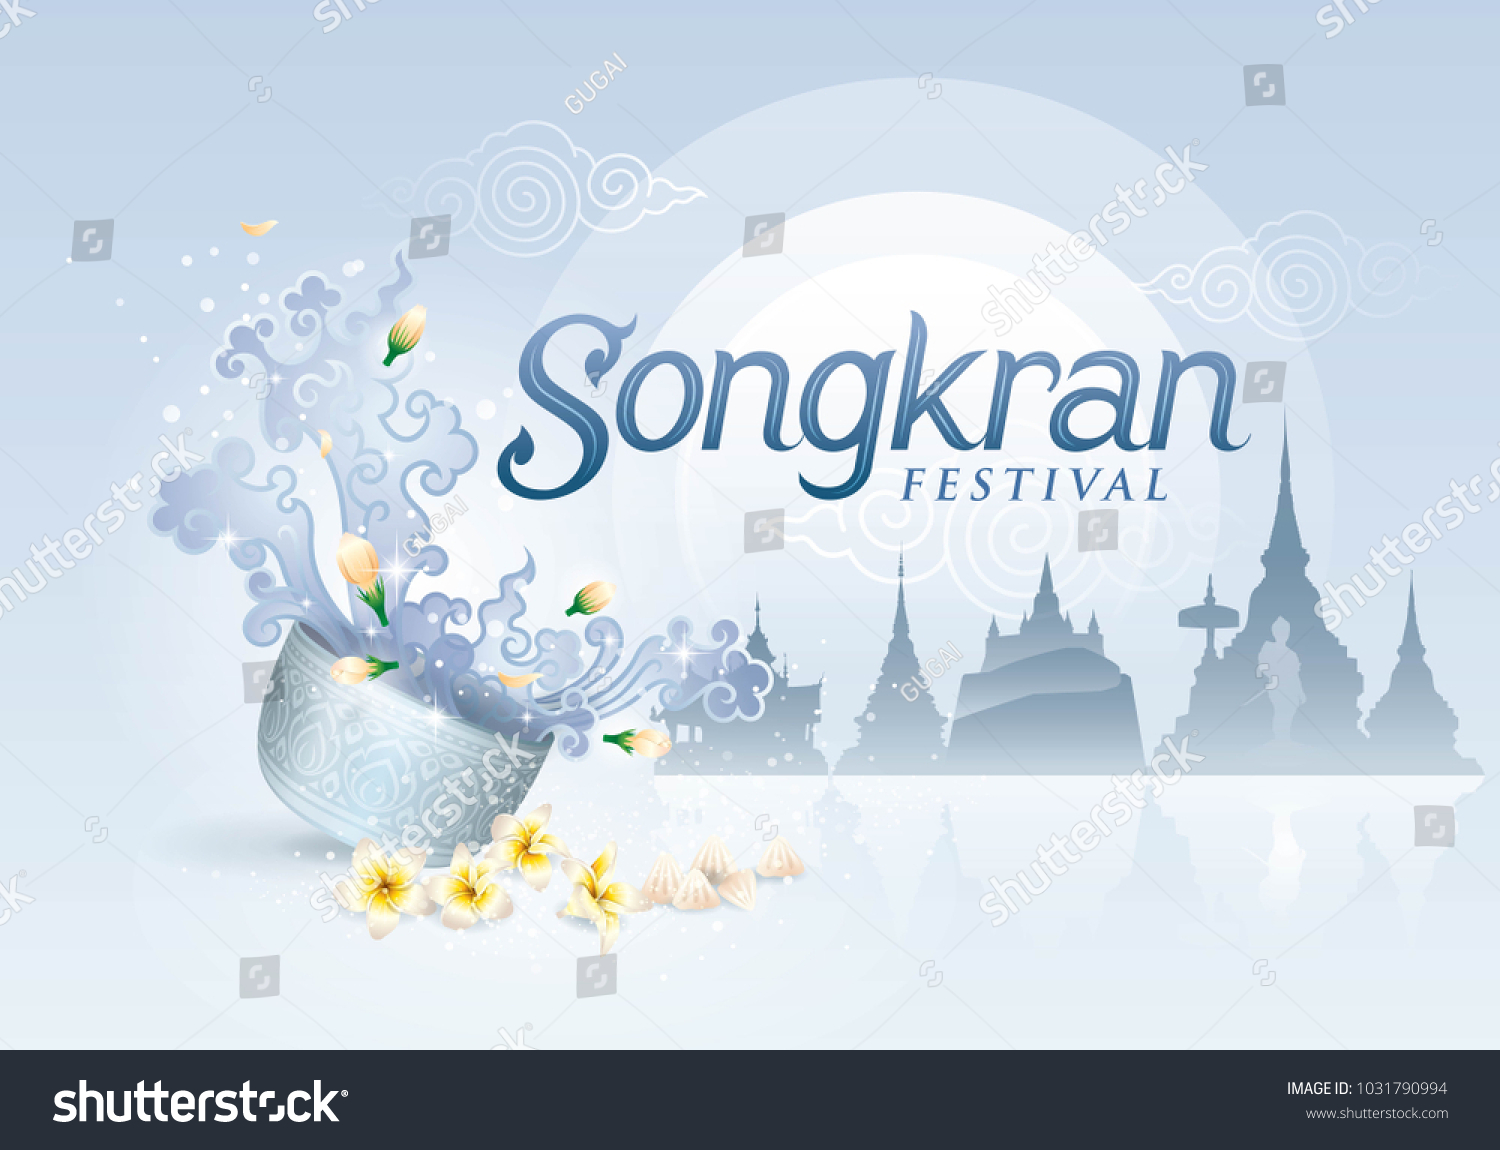 Songkran Festival in Thailand Vector, Thai traditional, Thai Water Splash with Jasmine Flowers, White frangipani tropical flower, plumeria flower blooming and White clay filler